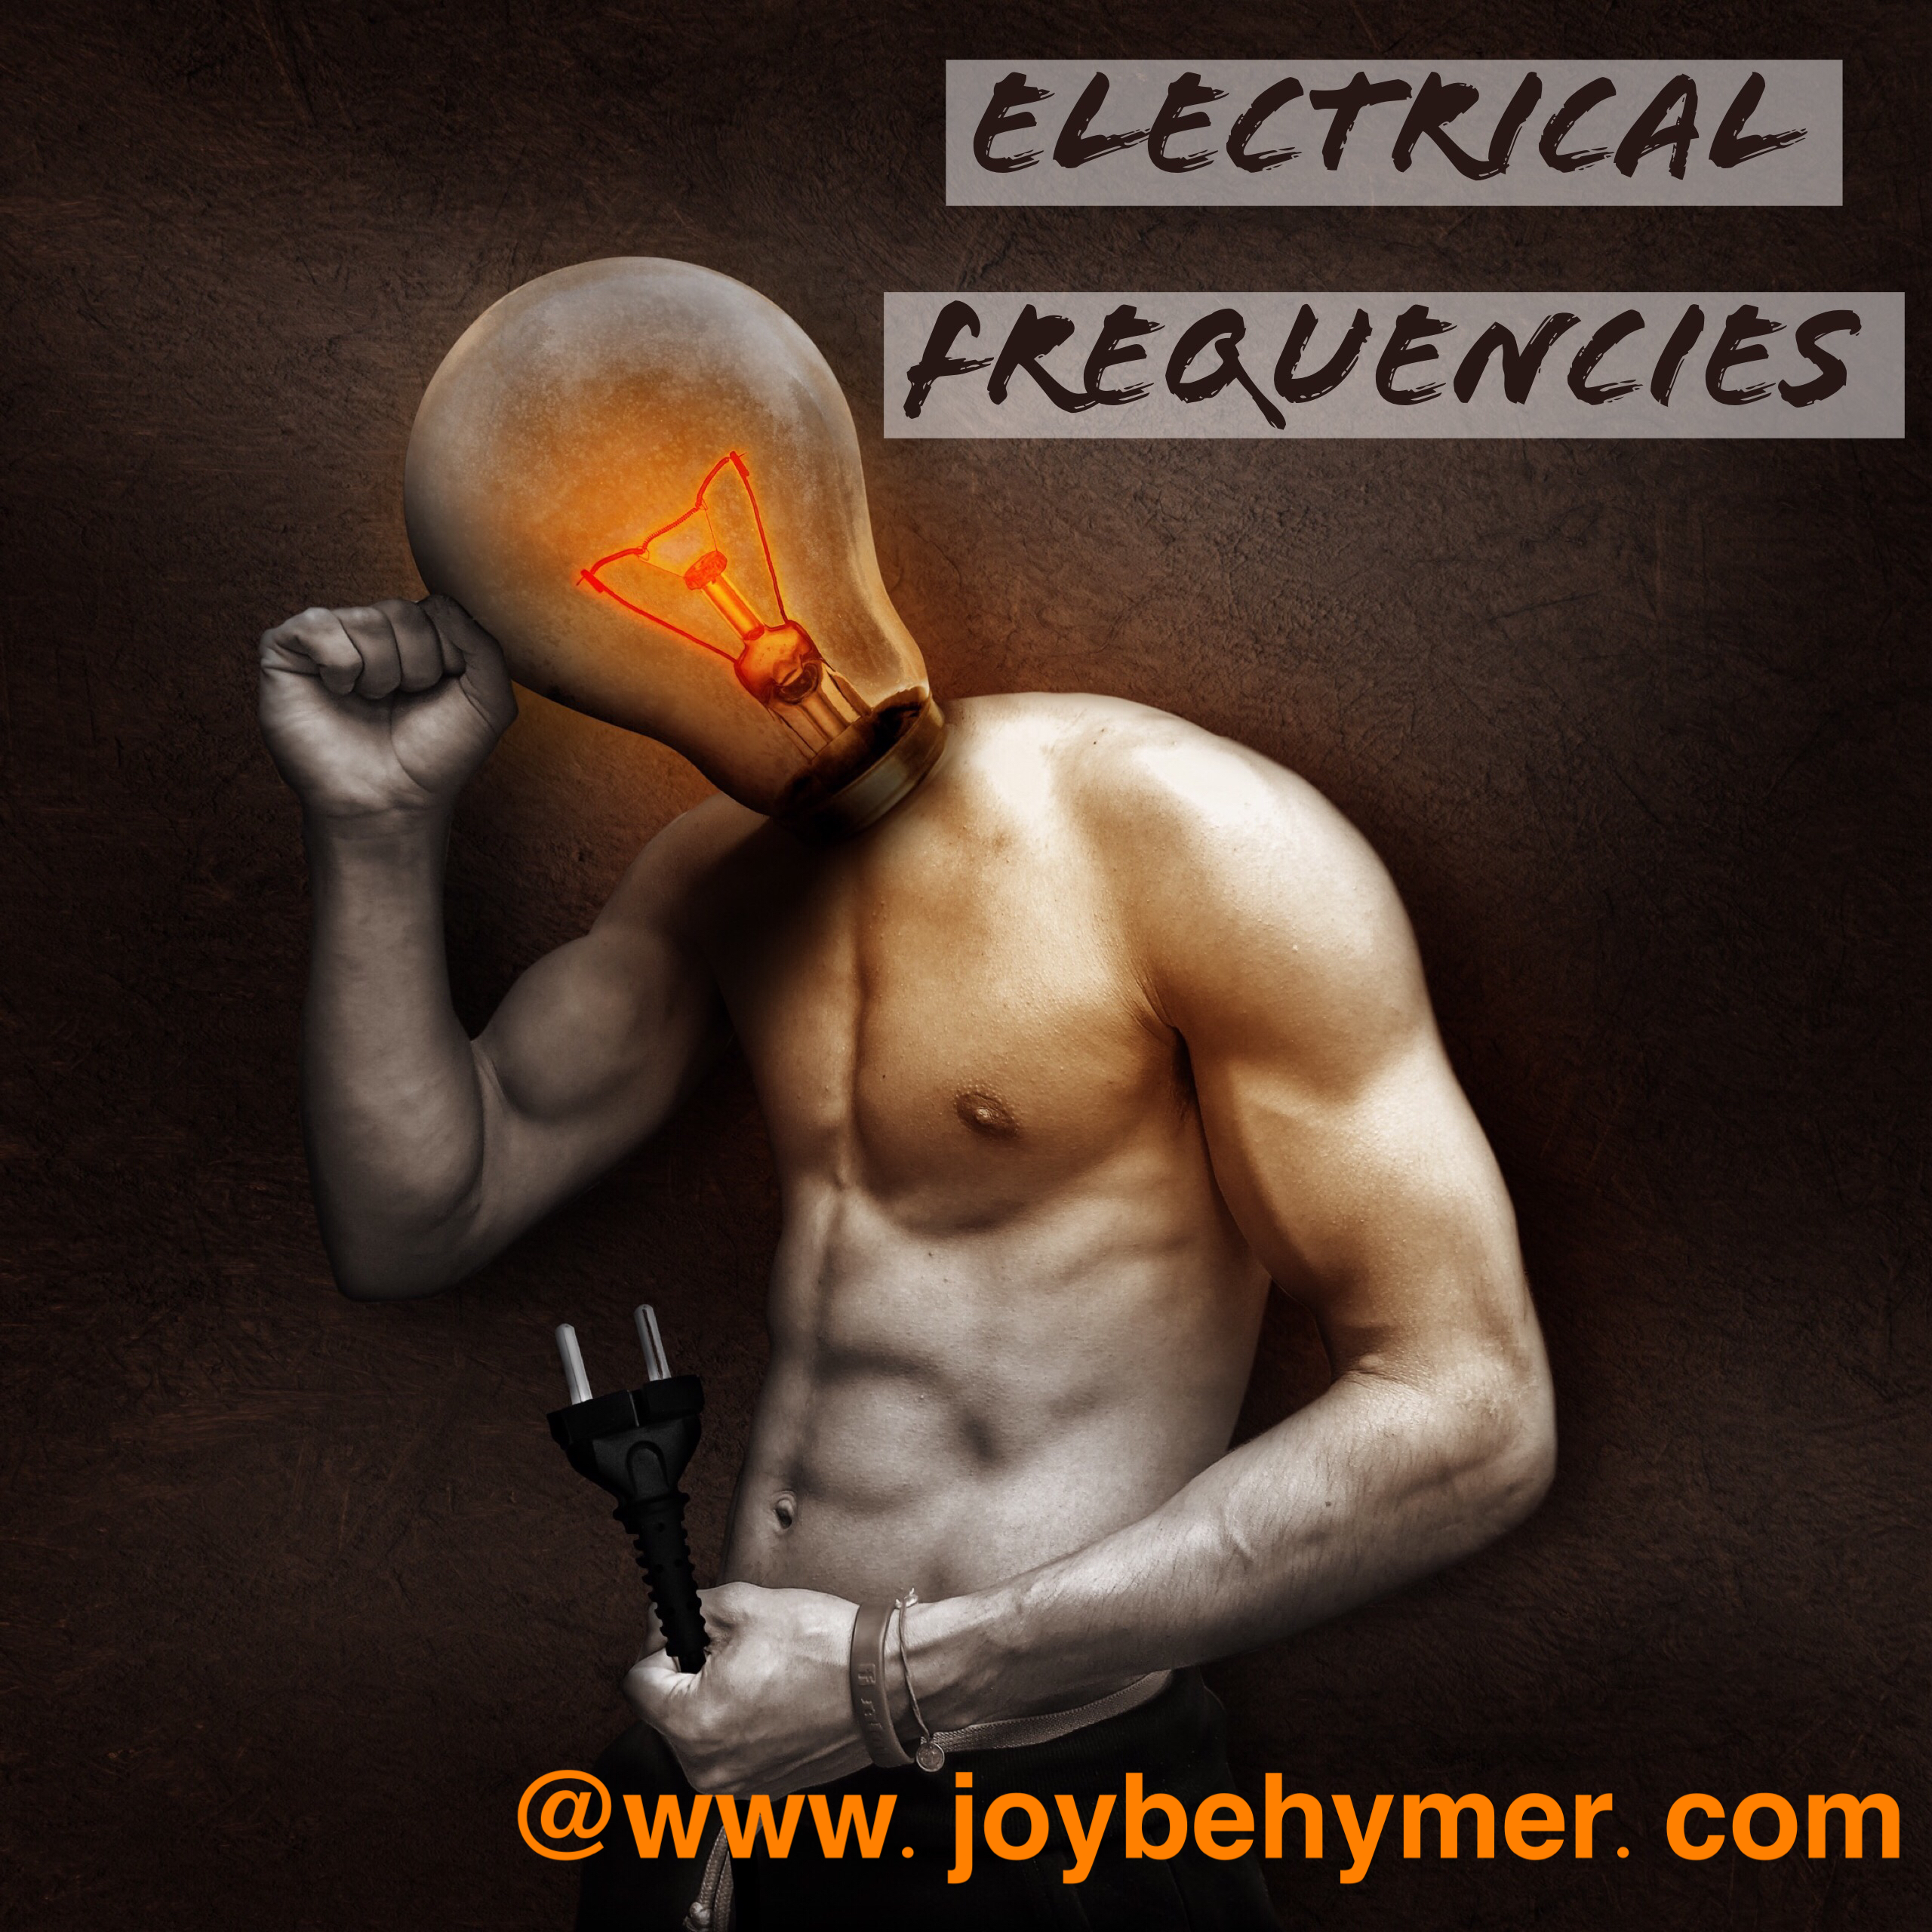 Electrical freqeuncies